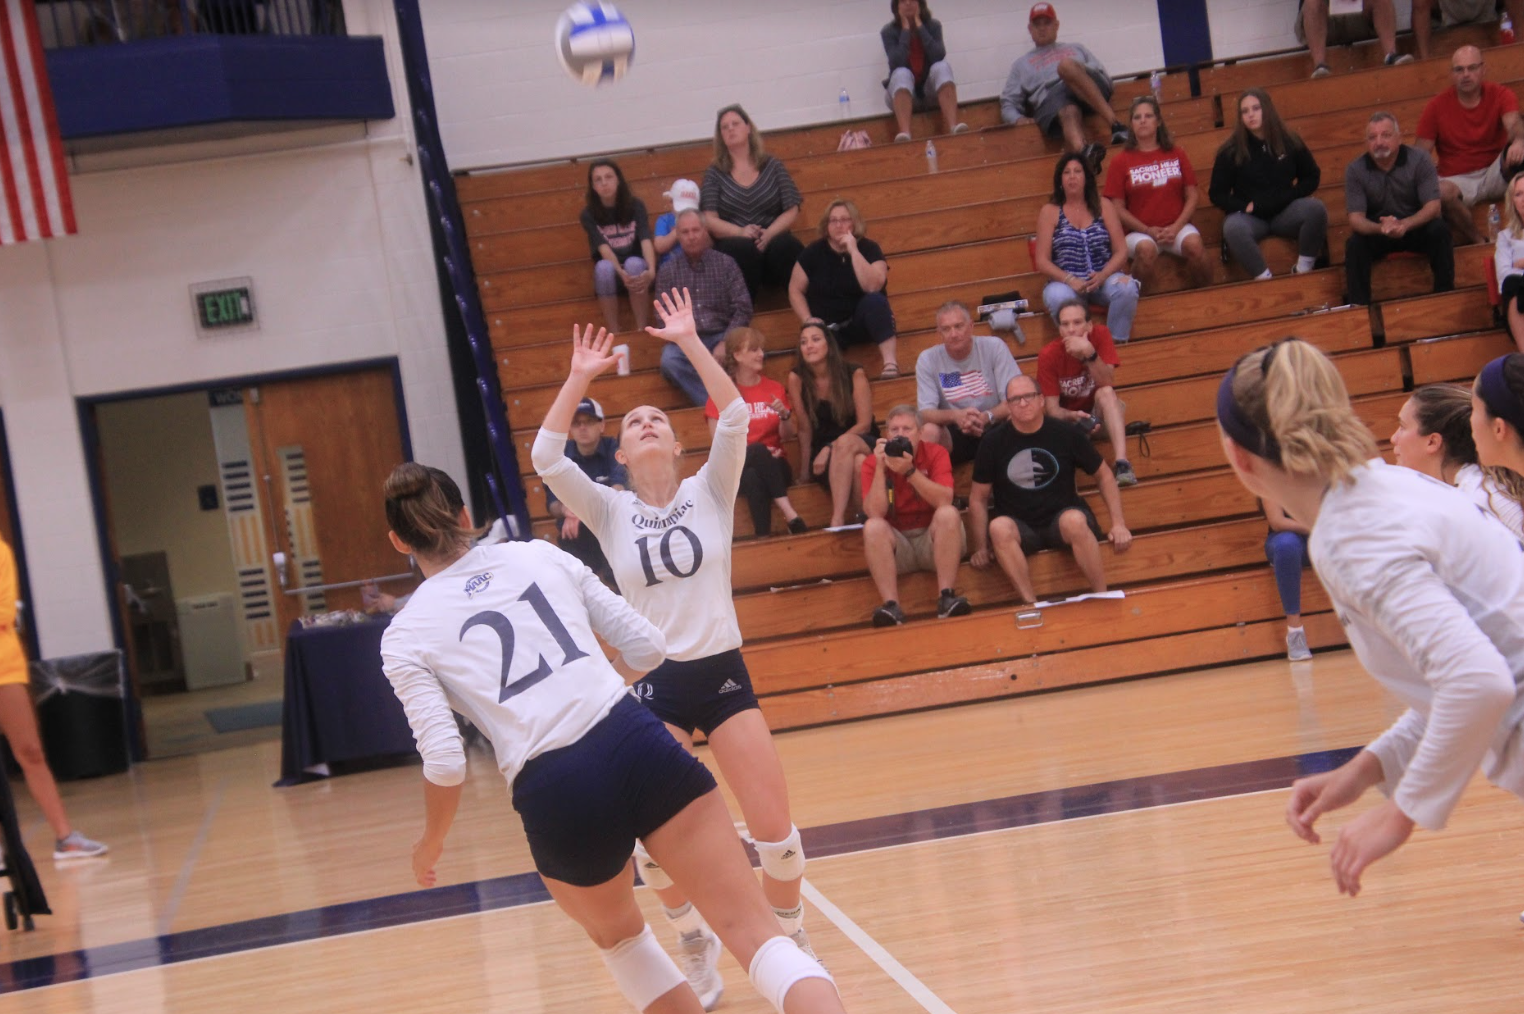 Quinnipiac volleyball remains winless after loss to Sacred Heart